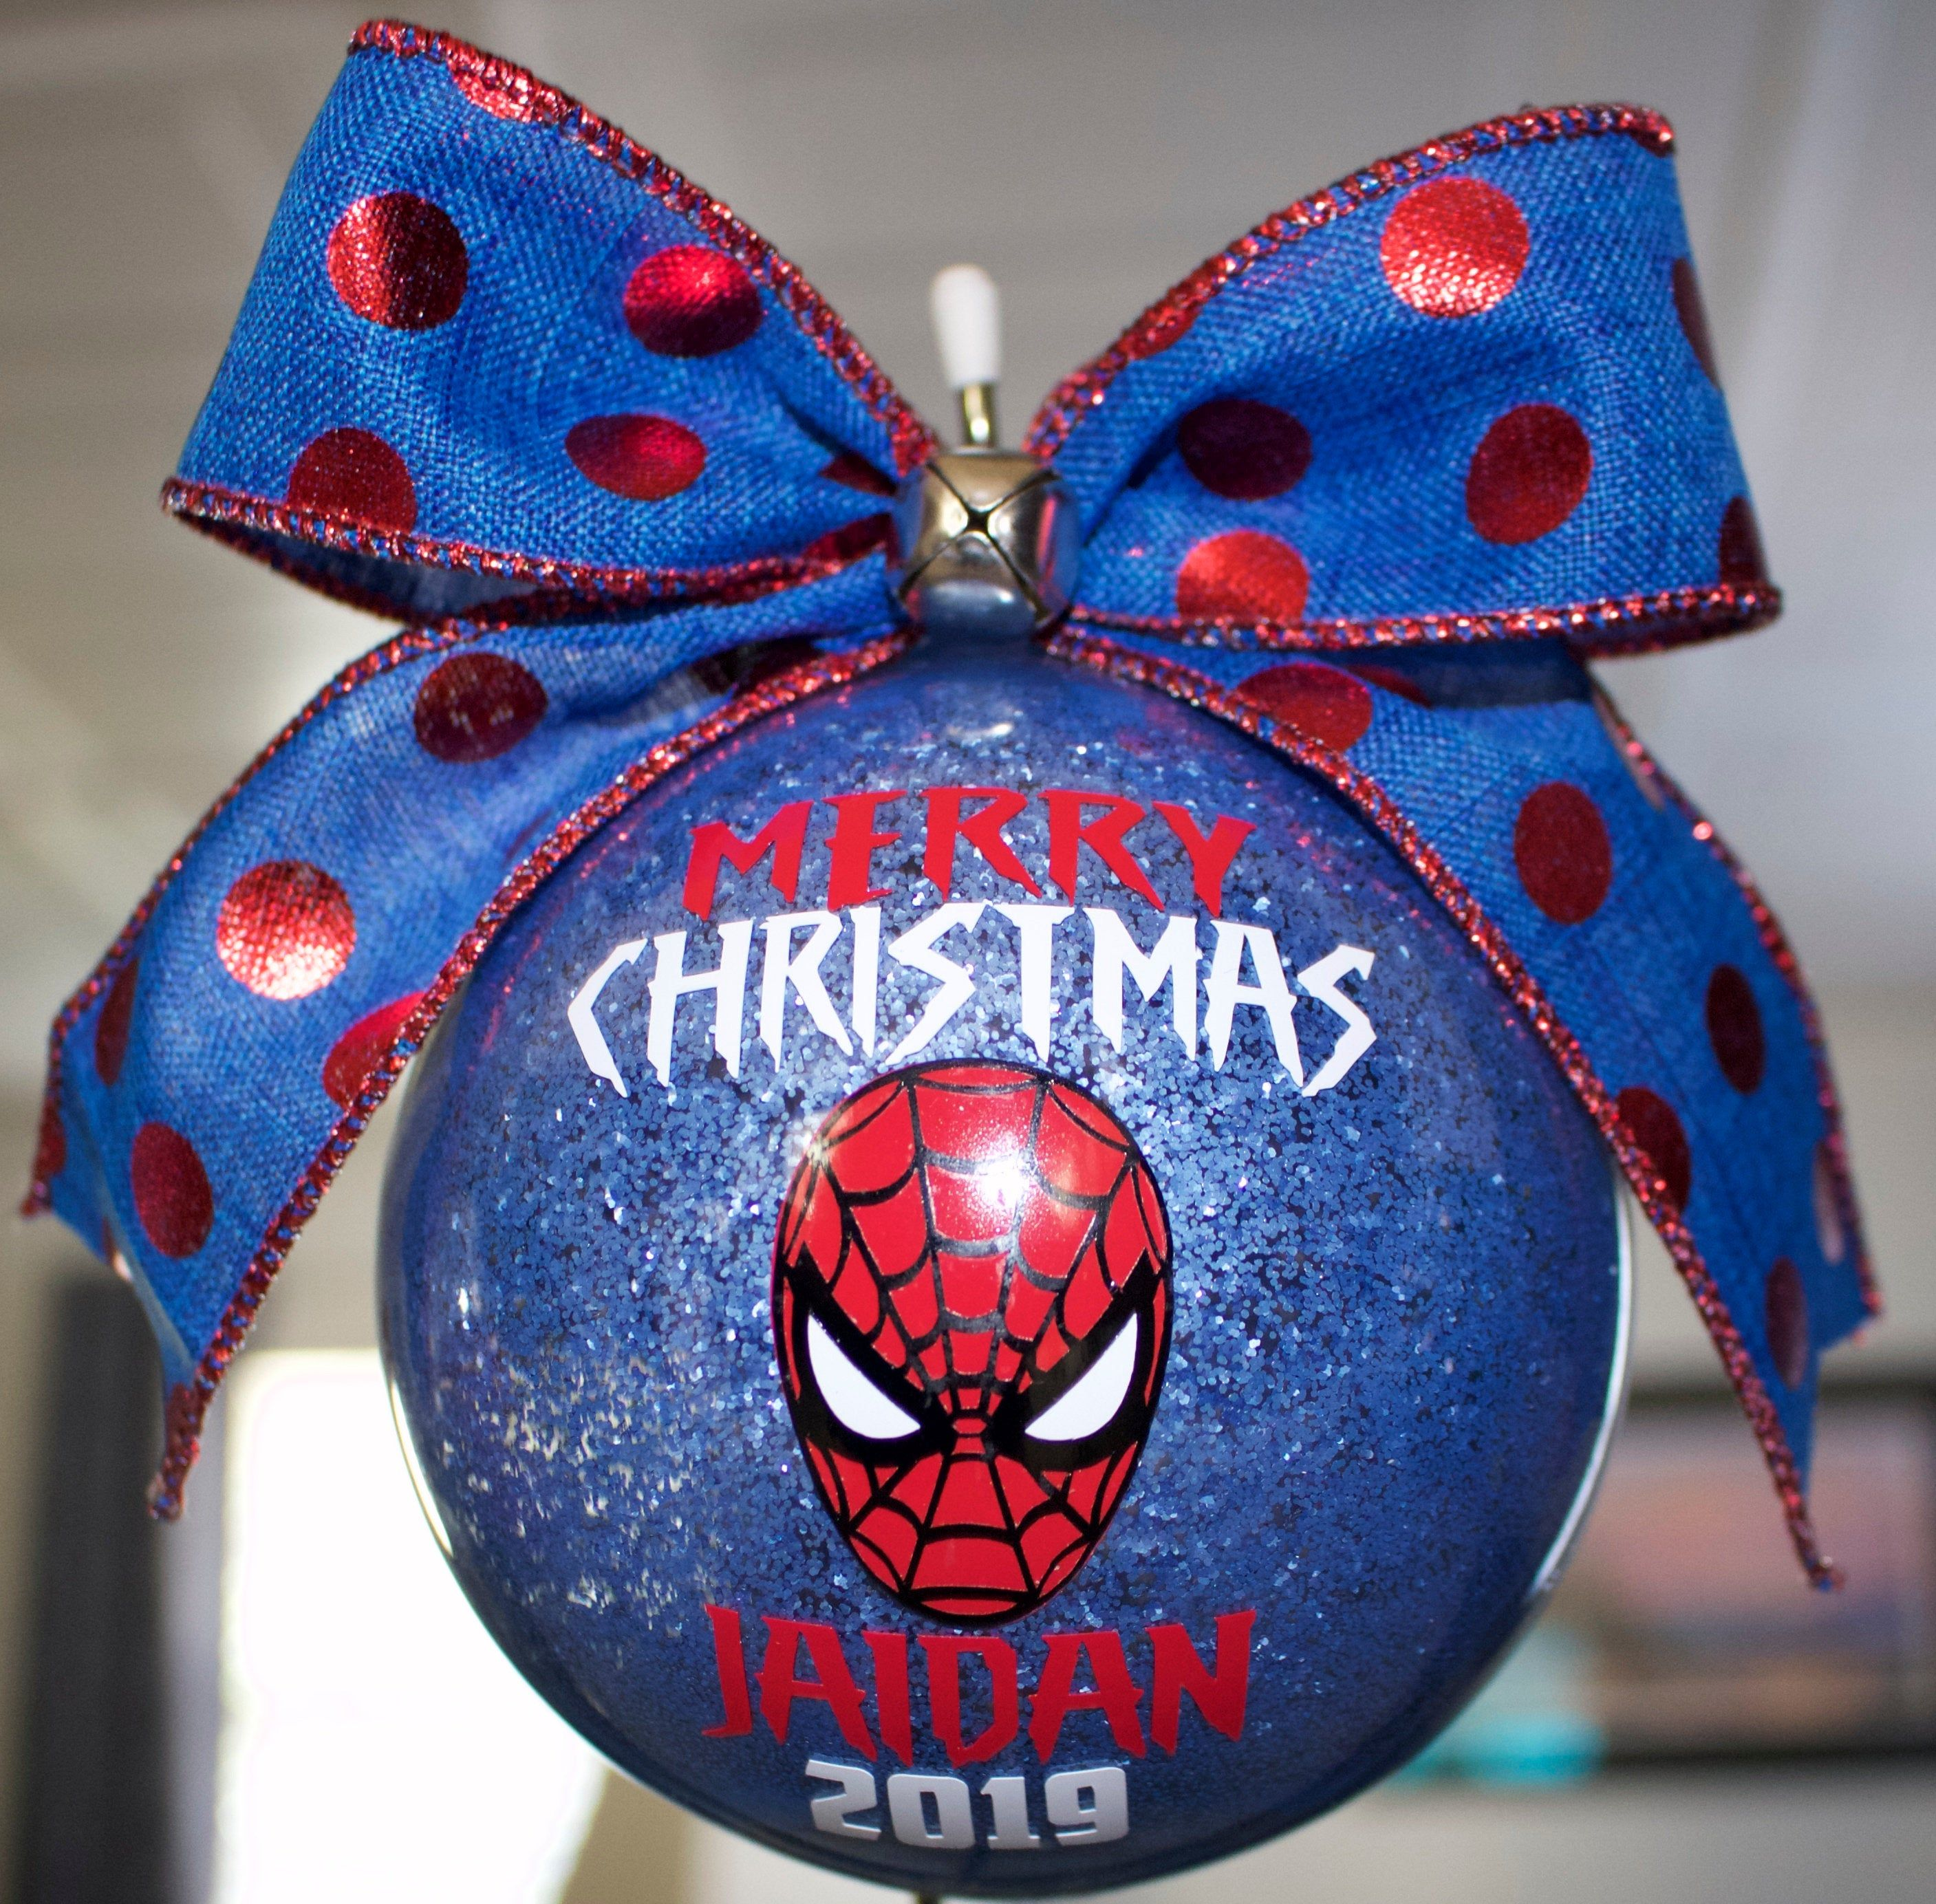 Boys Custom Ornament Personalized Spiderman Ornament Superhero Ornament Large 4 First Christmas Ornament Superhero Christmas Baby First Christmas Ornament